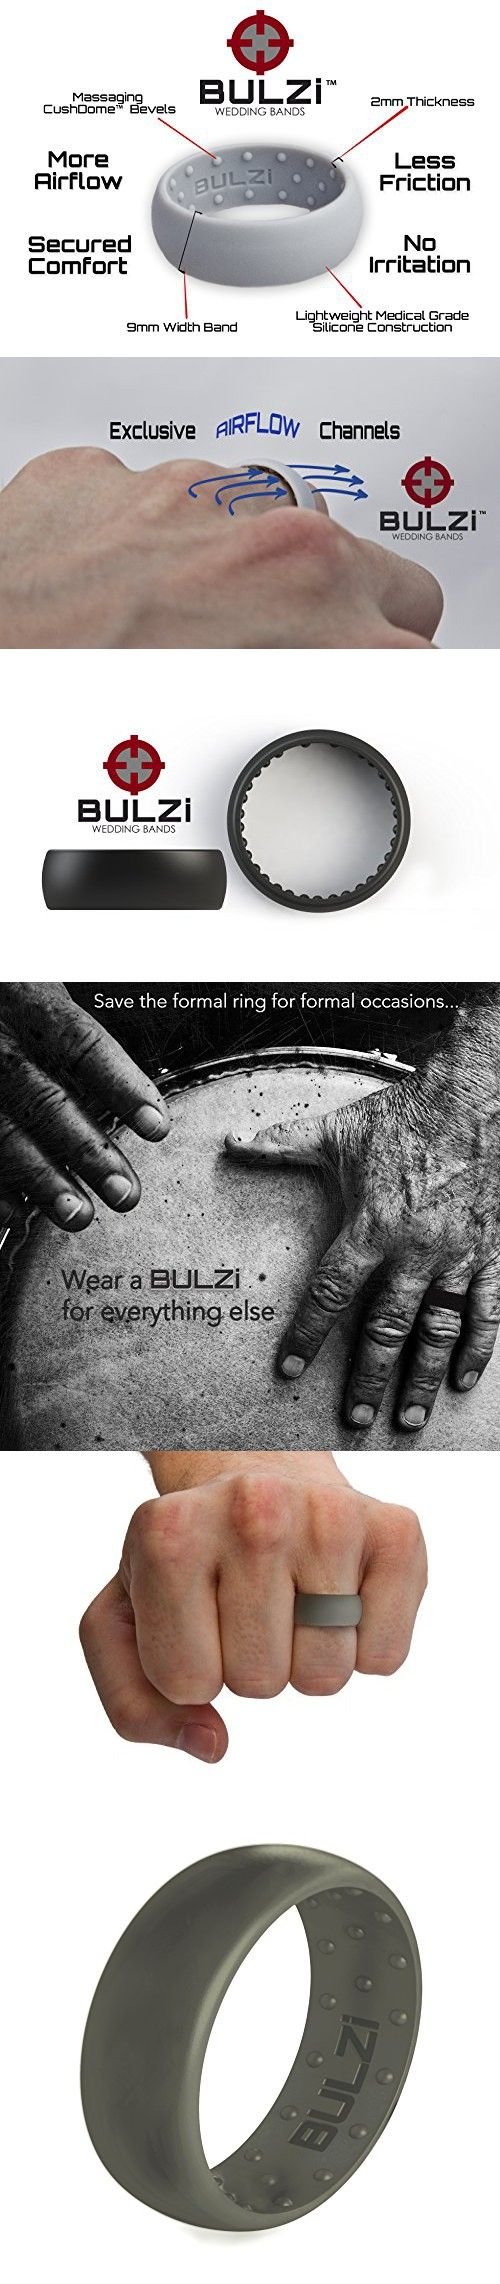 safety wedding band BULZi Massaging Comfort Fit Silicone Wedding Ring Most Comfortable Men s Wedding Band Round Edges with Flexible Work Safety Domed Design 3 PACK Trio